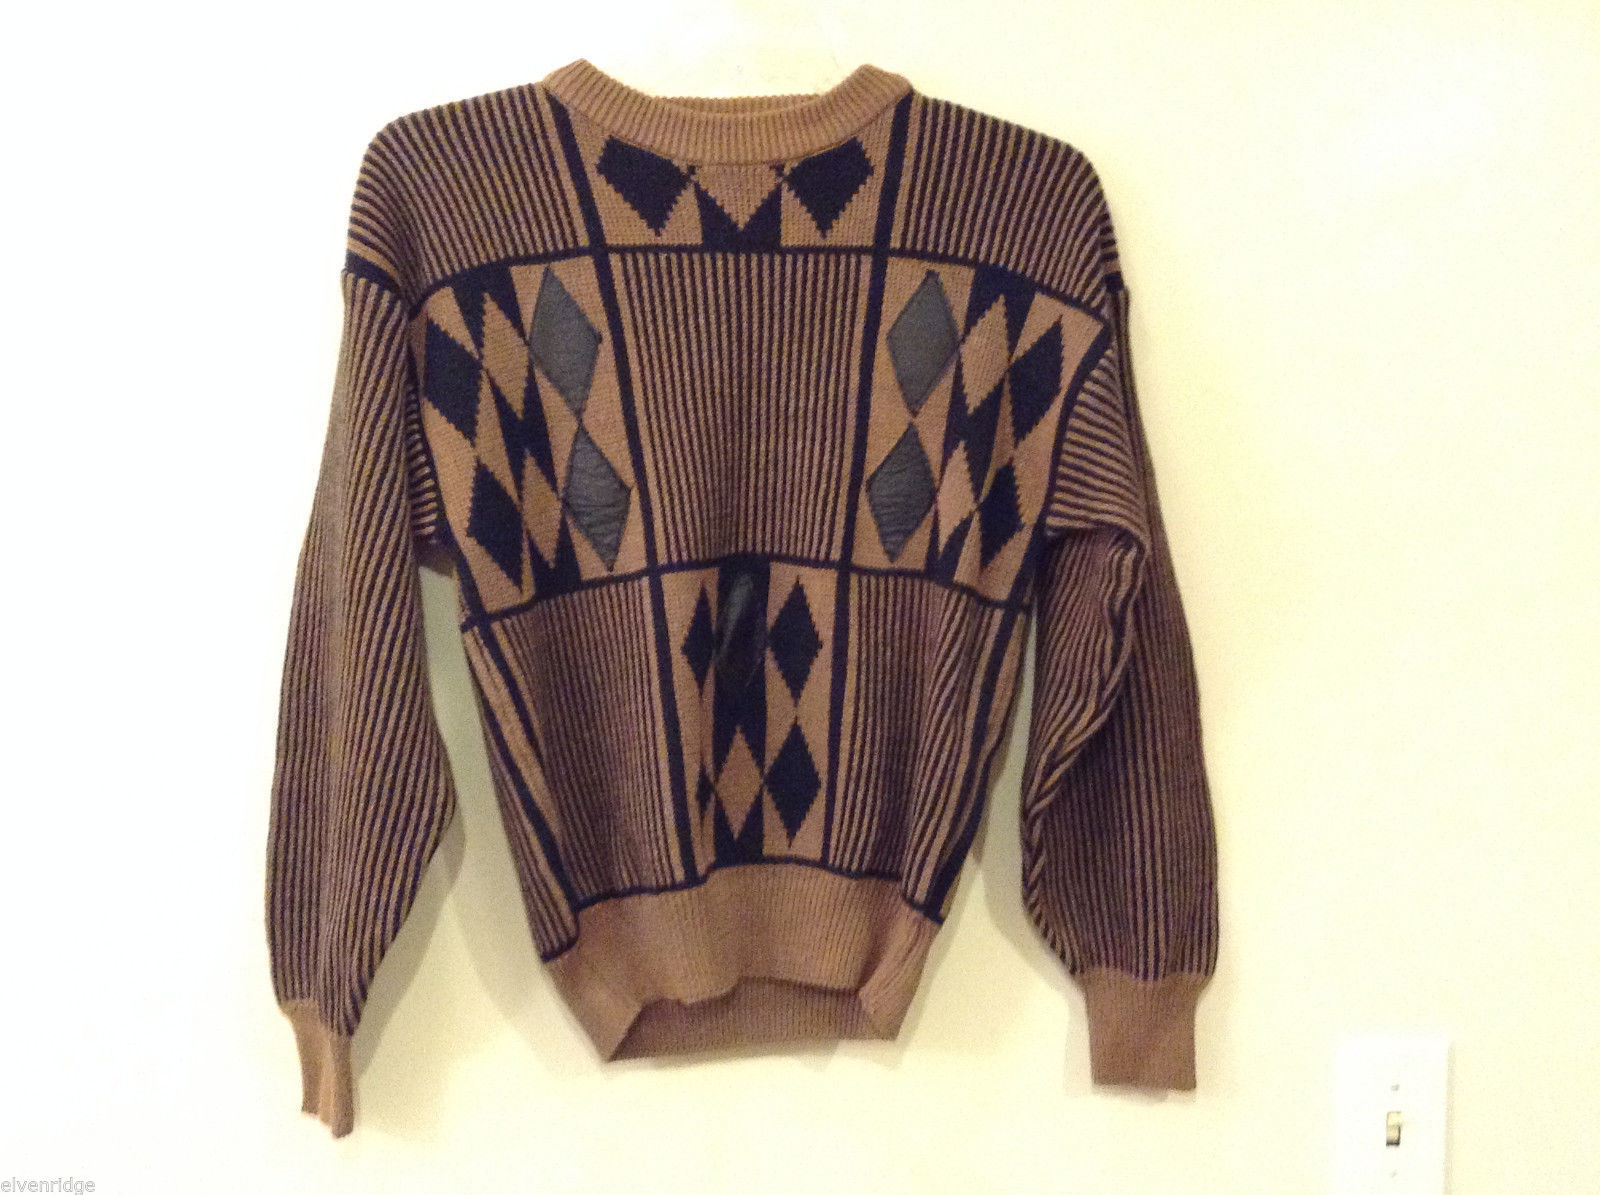 Women's Size XL Sweater Geometric Black Diamond & Striped Print on Tan + Leather